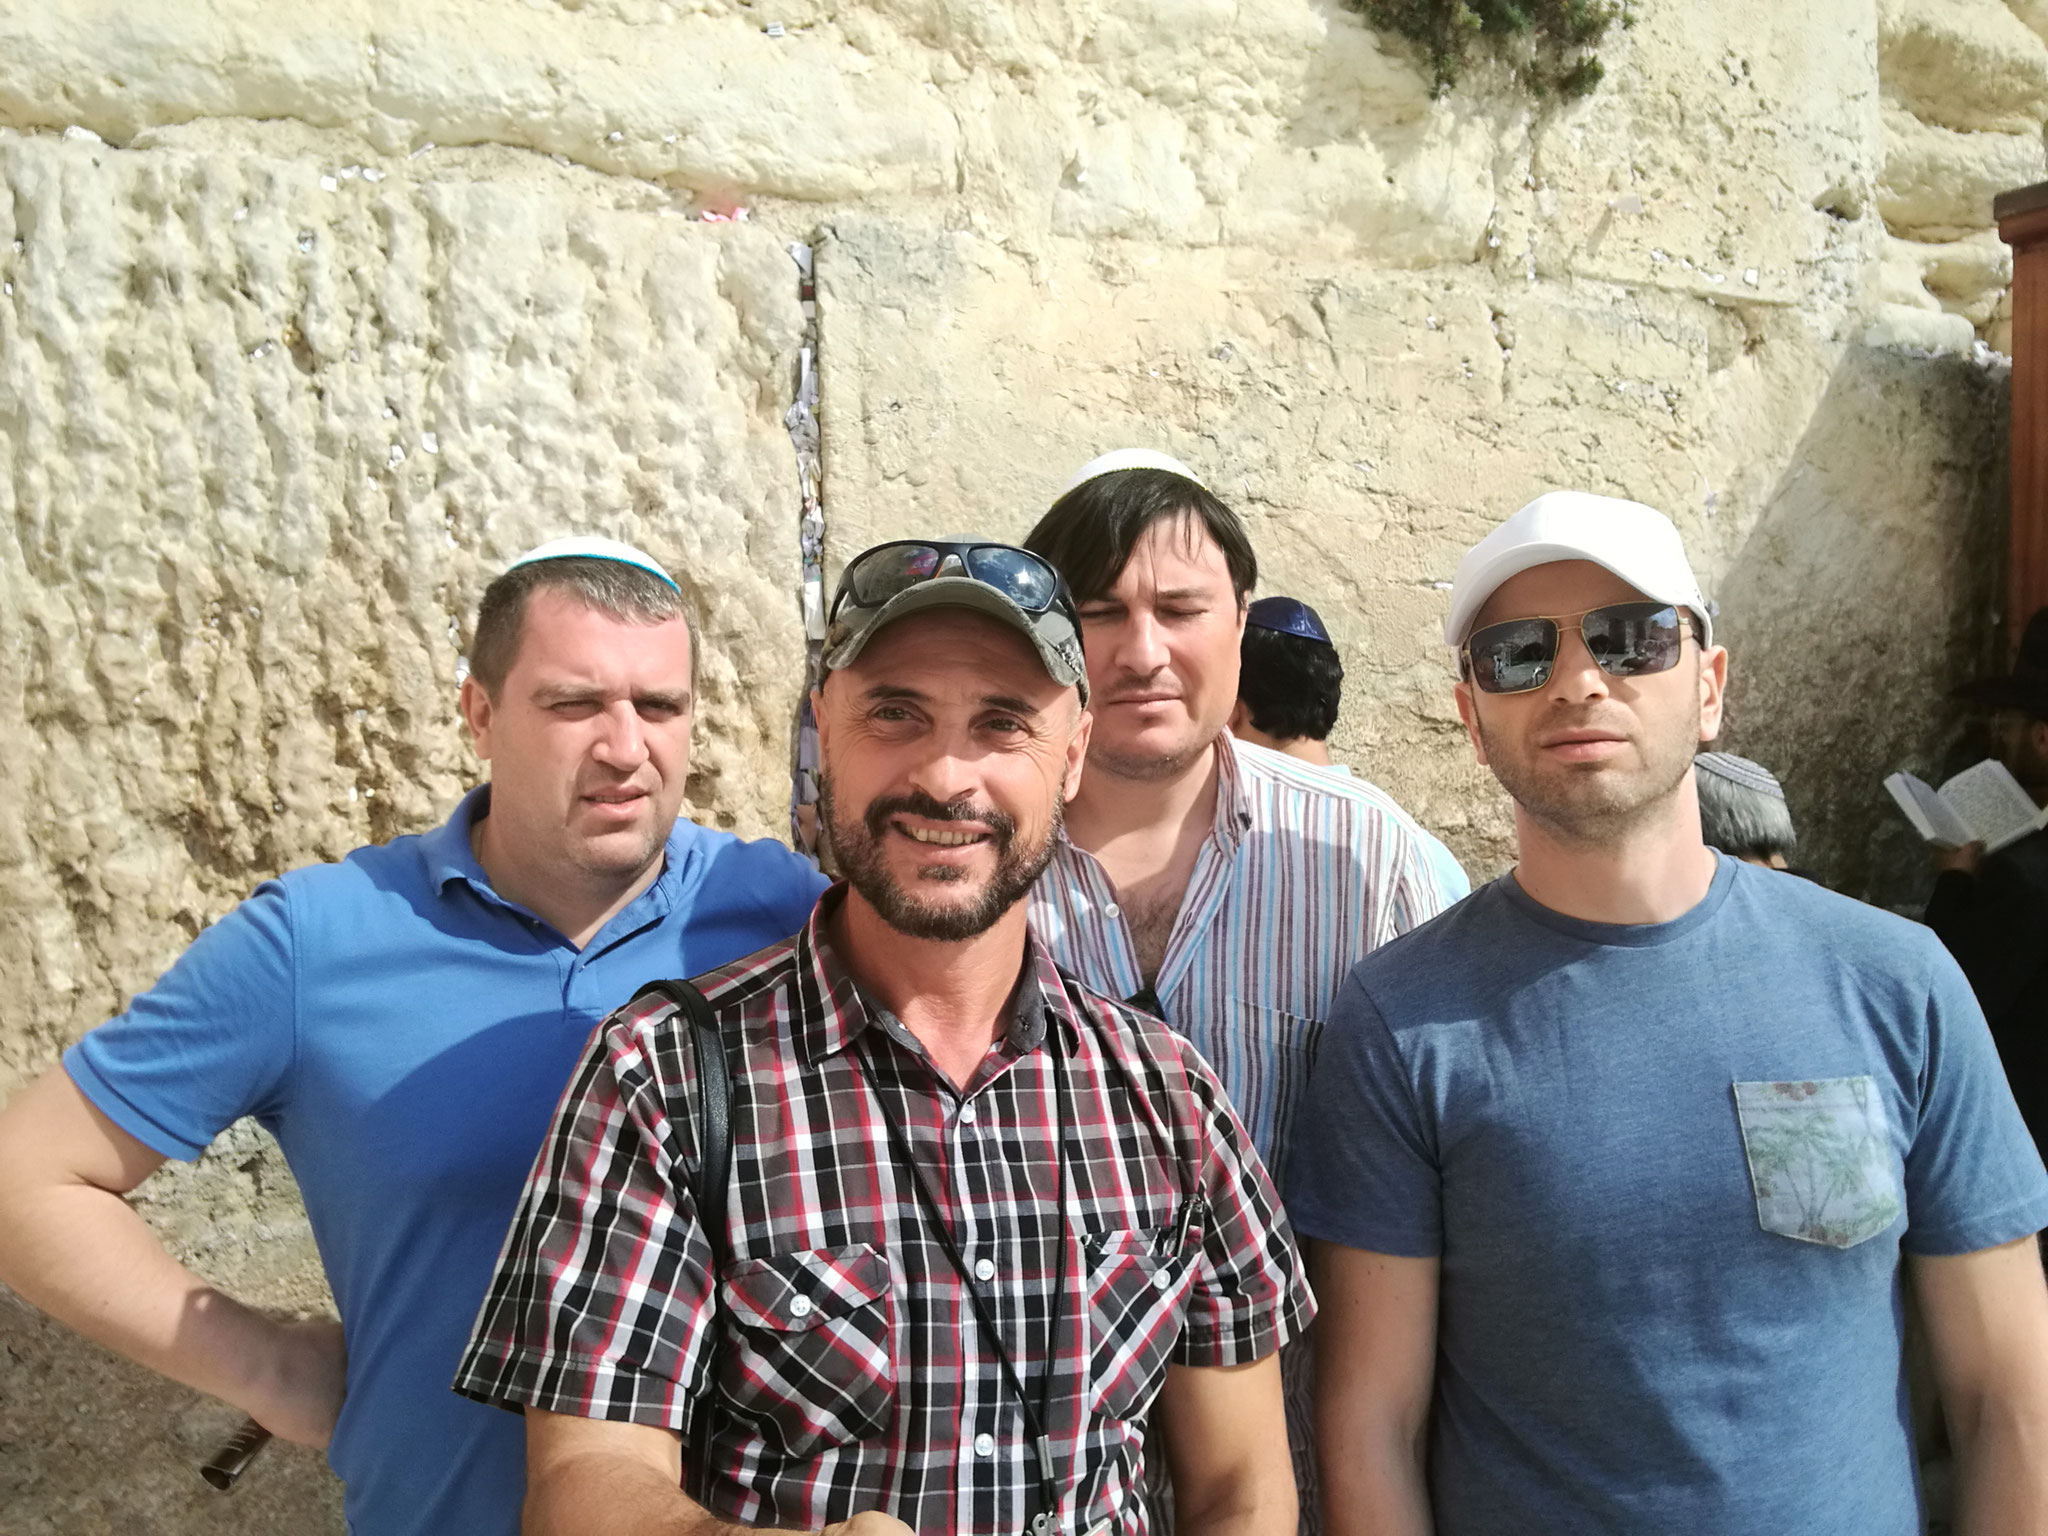 Ukrainian Jewish tourists at the Western Wall, 2017